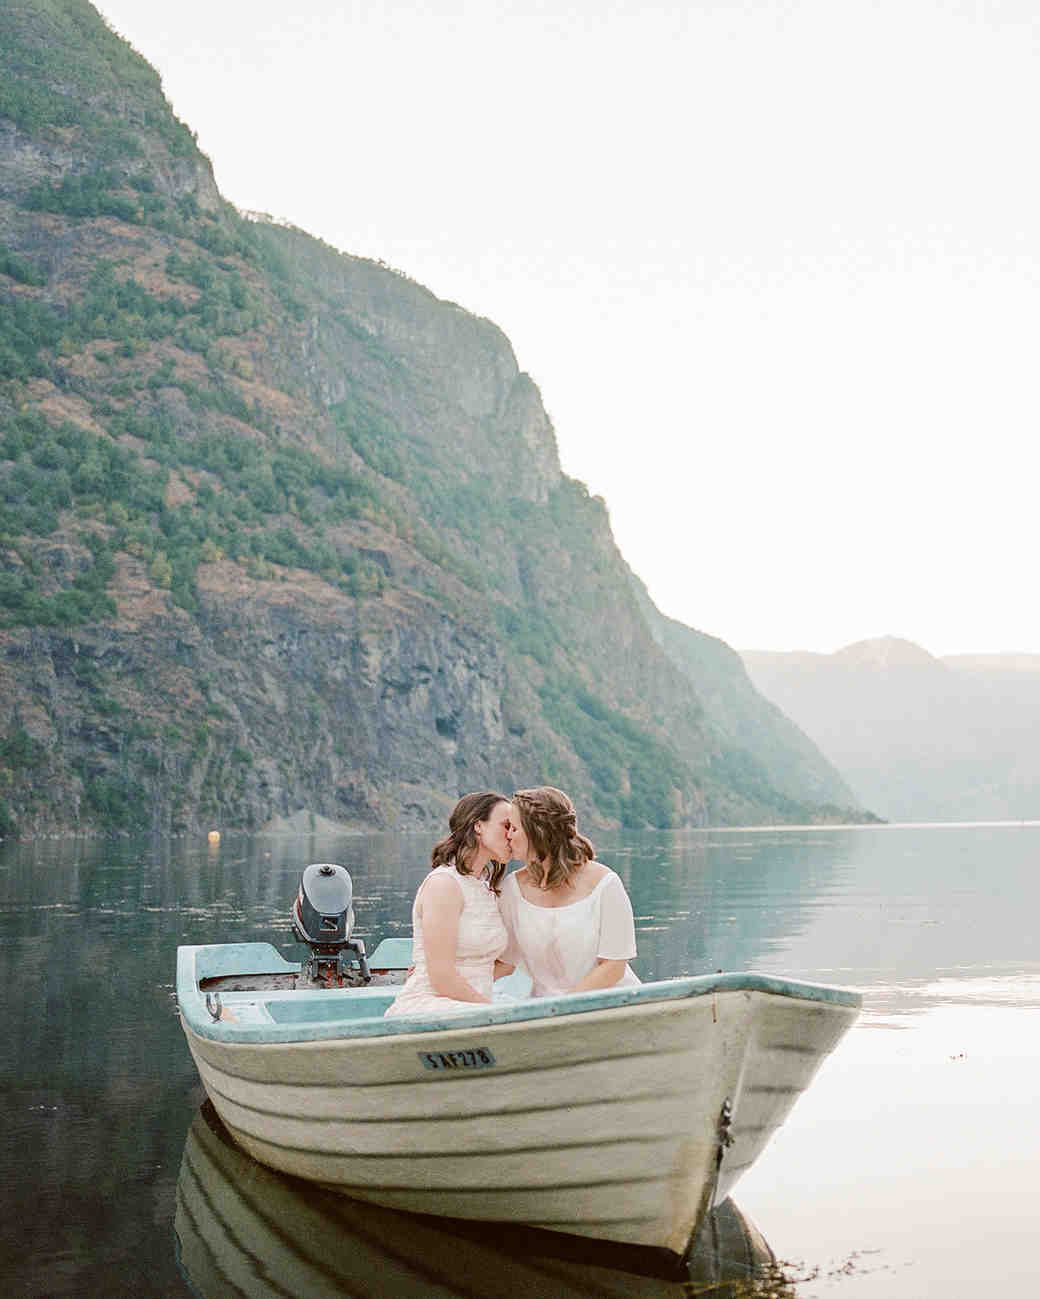 destination engagement couple love boat lake and mountain view